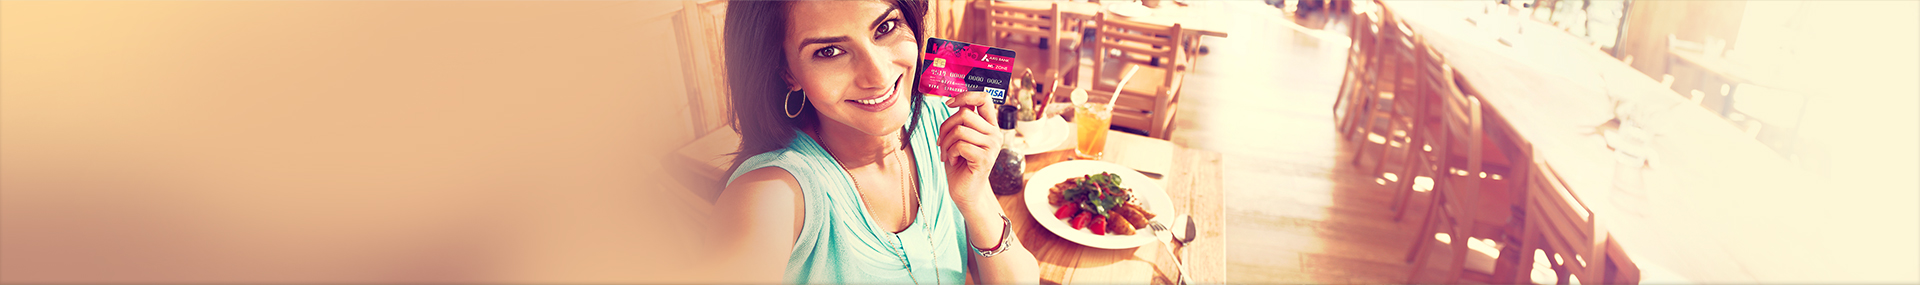 Titanium Rewards Debit Card